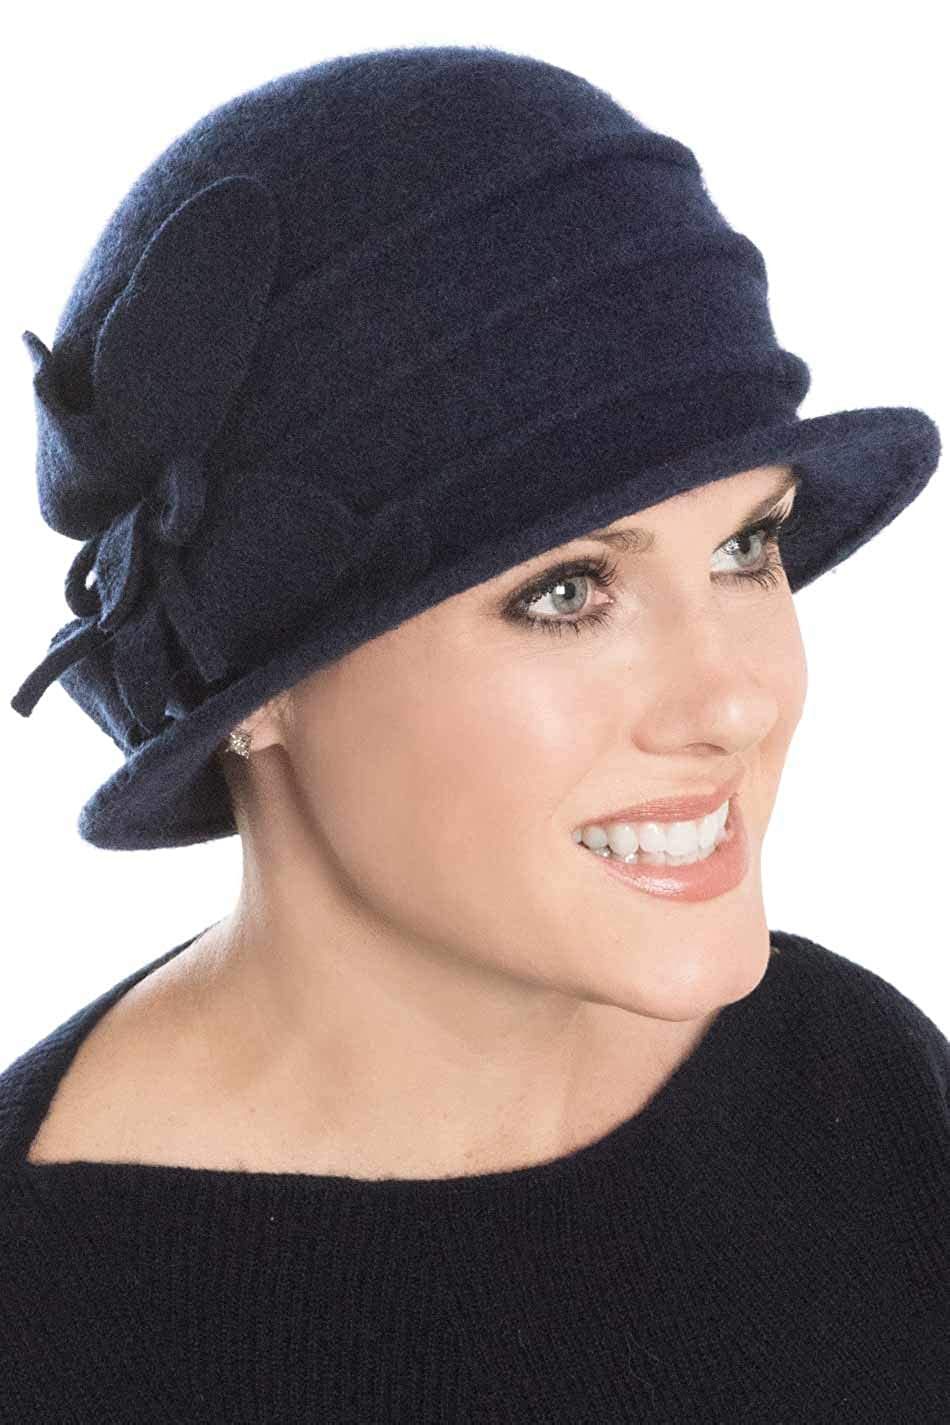 Headcovers Unlimited Wool Ireland Cloche Hat for Women - Winter Cancer    Chemo Hat Ireland - Black at Amazon Women s Clothing store  d18bc32e354